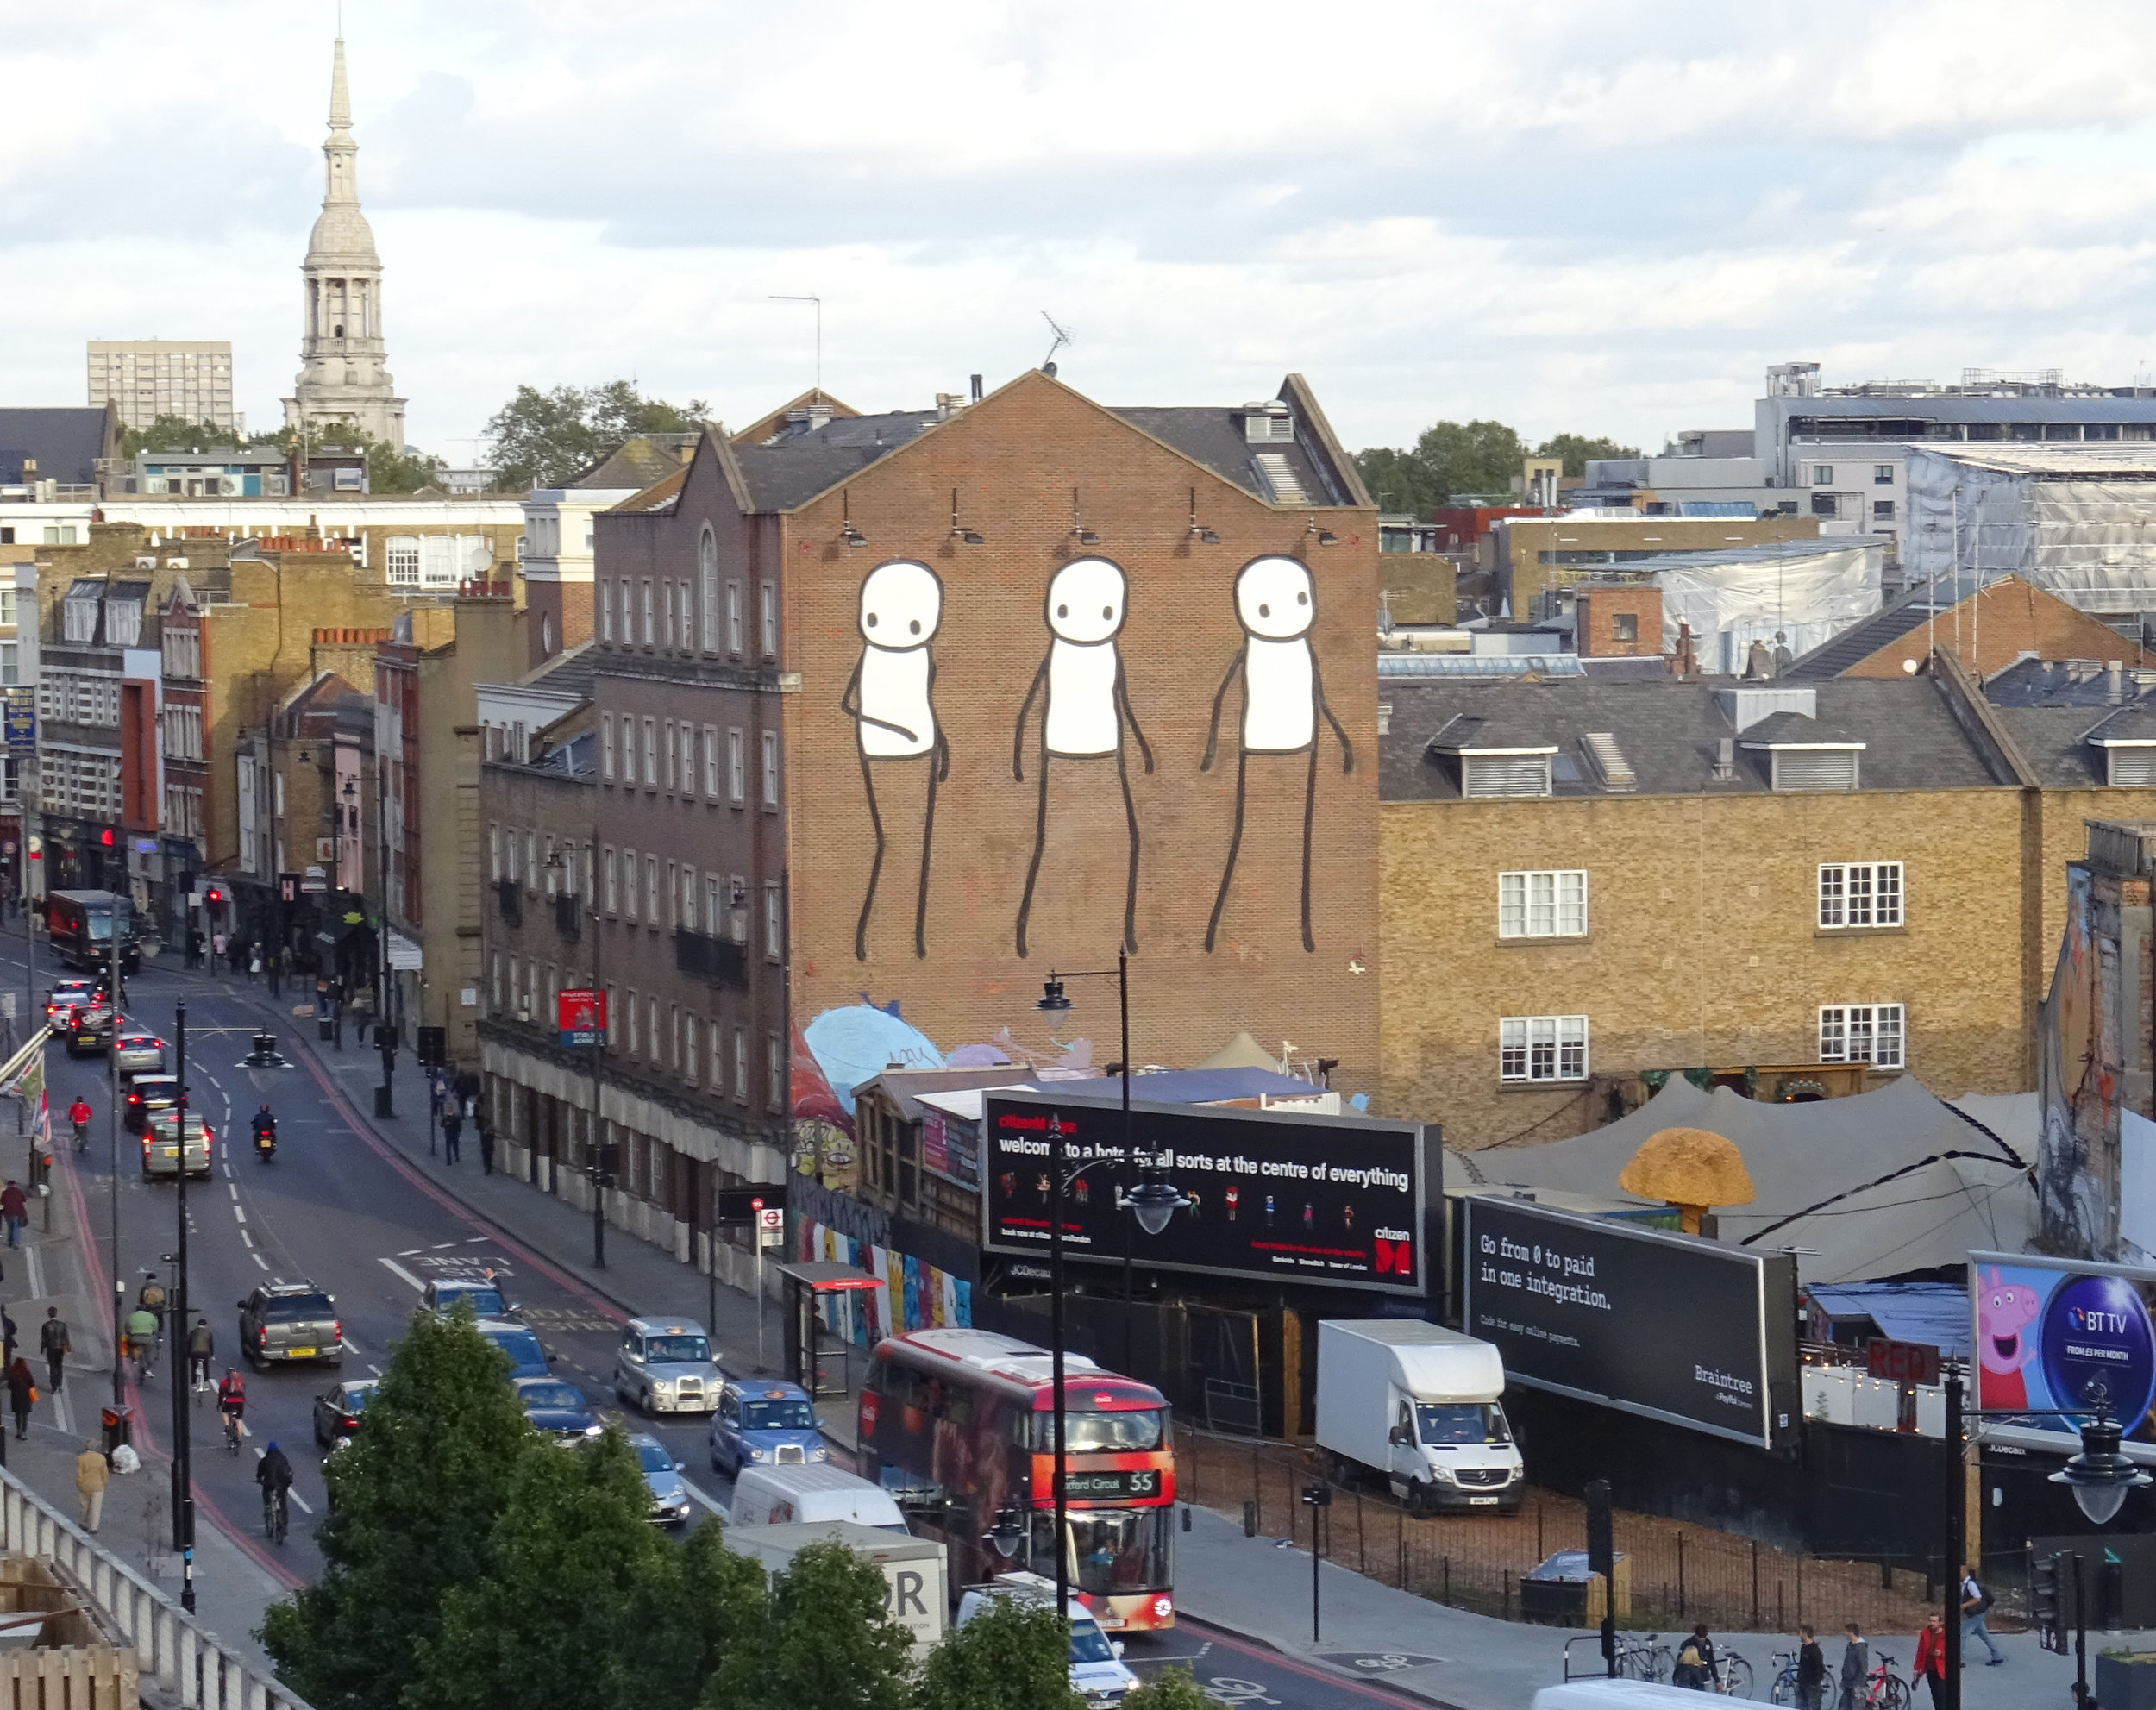 Past, Present and Future  Three figures representing the past, present and future of Shoreditch rise high over the former artists' district, home now to only a handful of artists. The first figure looks longingly back on Old Street where artists once thrived, the second peers out at the encroaching billboards, uncertain of how long the few remaining artists can afford to stay, the third teeters precariously, to succeed or move on is yet to be seen. This mural is intermittently obscured by an advertising hoarding and is visible only on certain weeks of the year.